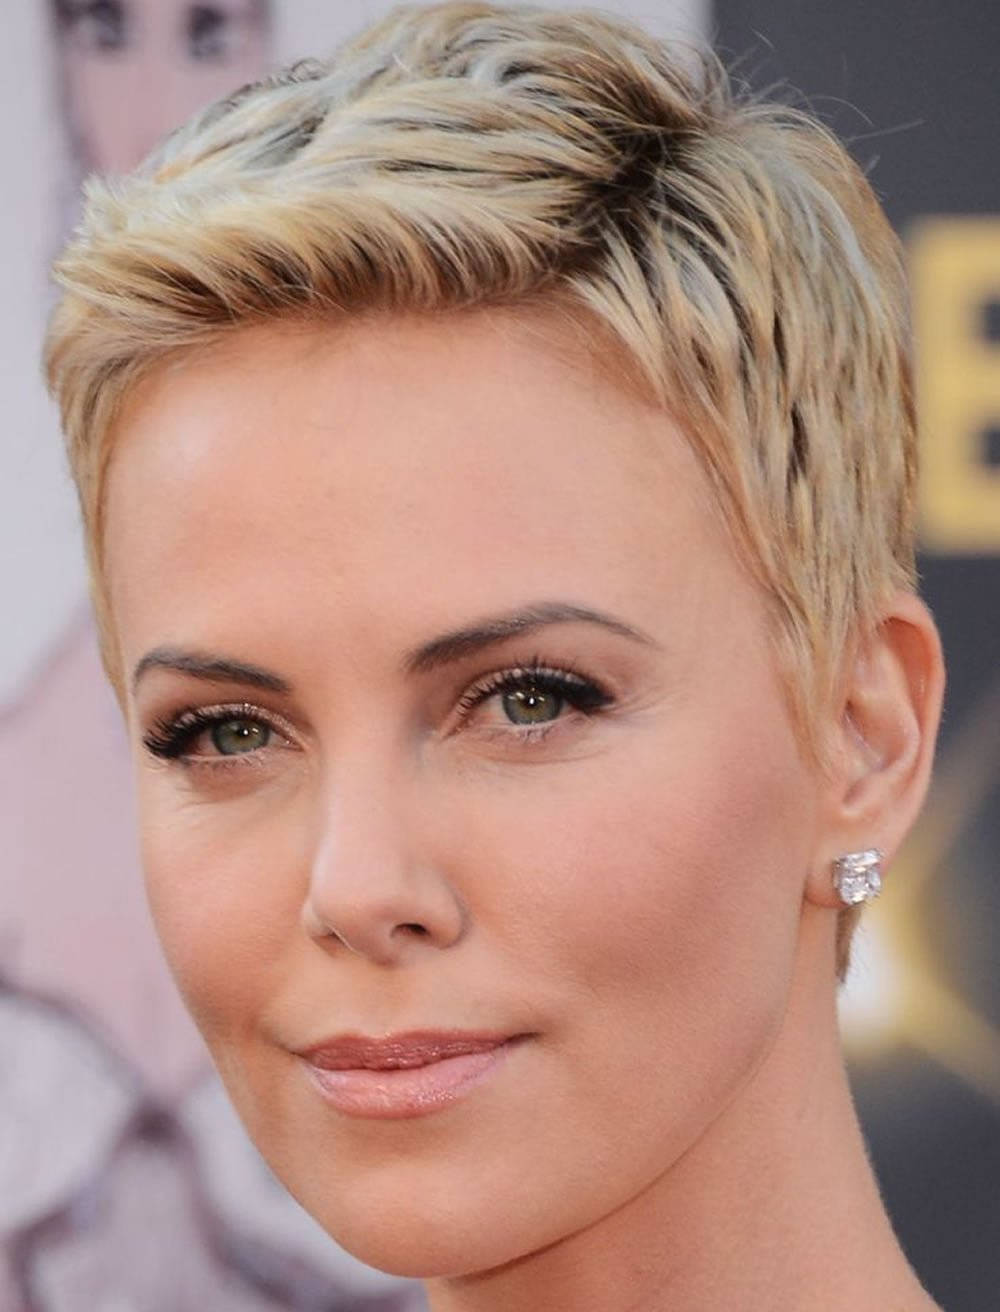 pixie haircut styles 2018 pixie hairstyles and haircuts for 40 to 60 1077